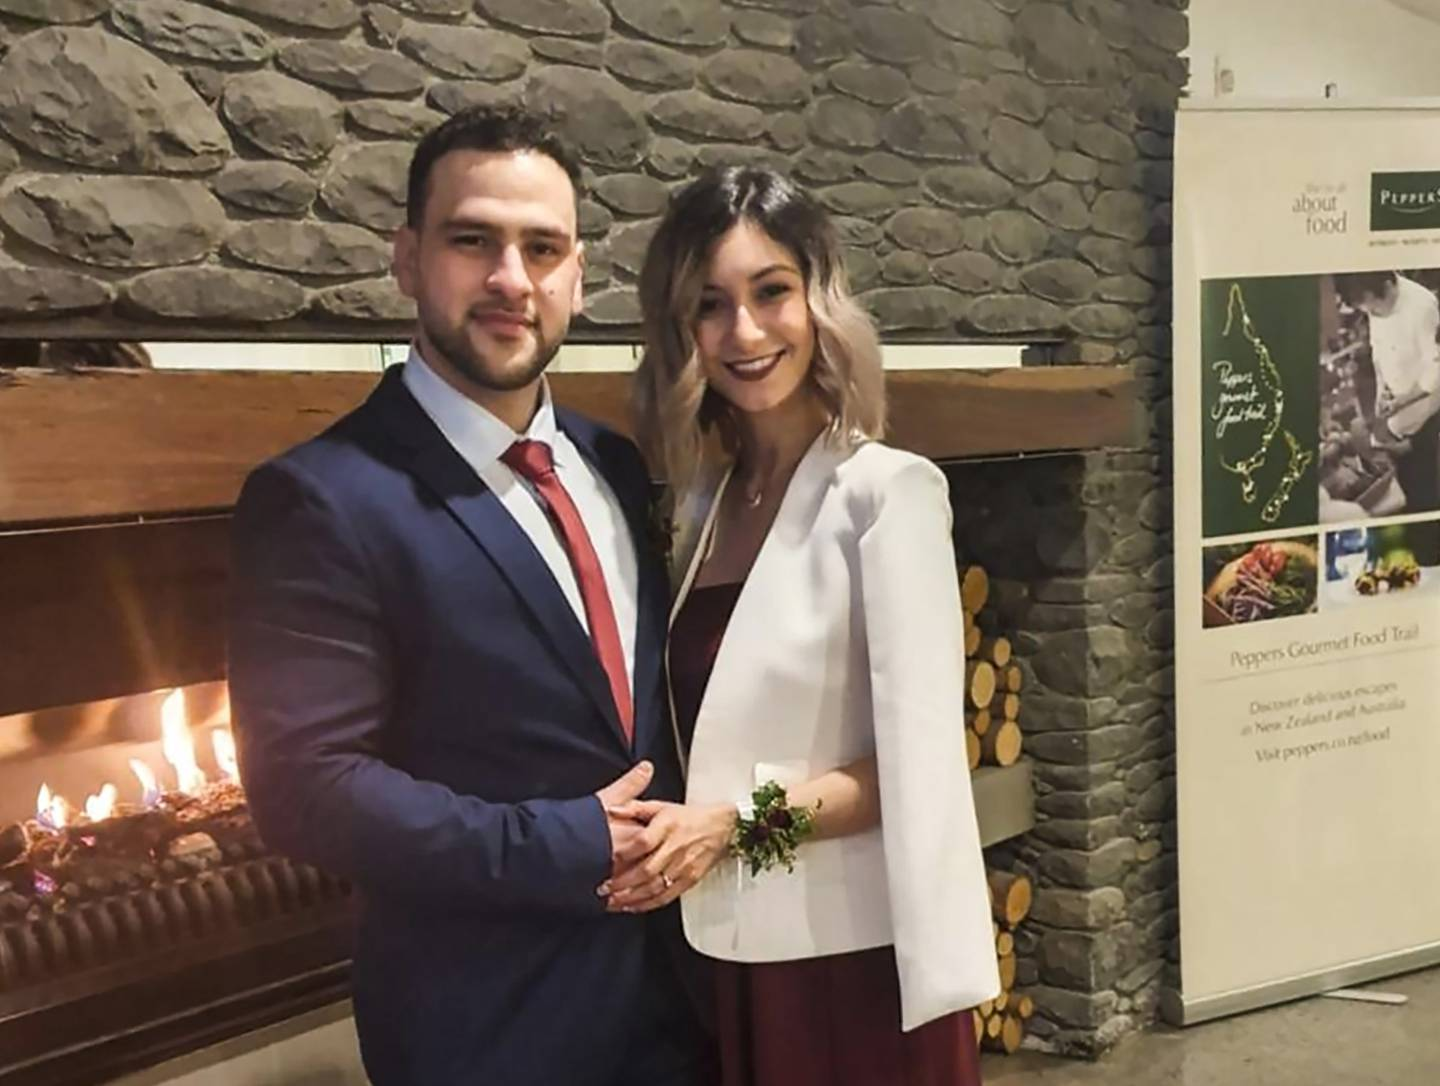 Mahdi Zougub and Fay El Hanafy were injured in the crash just minutes after their wedding at Terrace Downs Resort in Mid Canterbury. Photo / Supplied